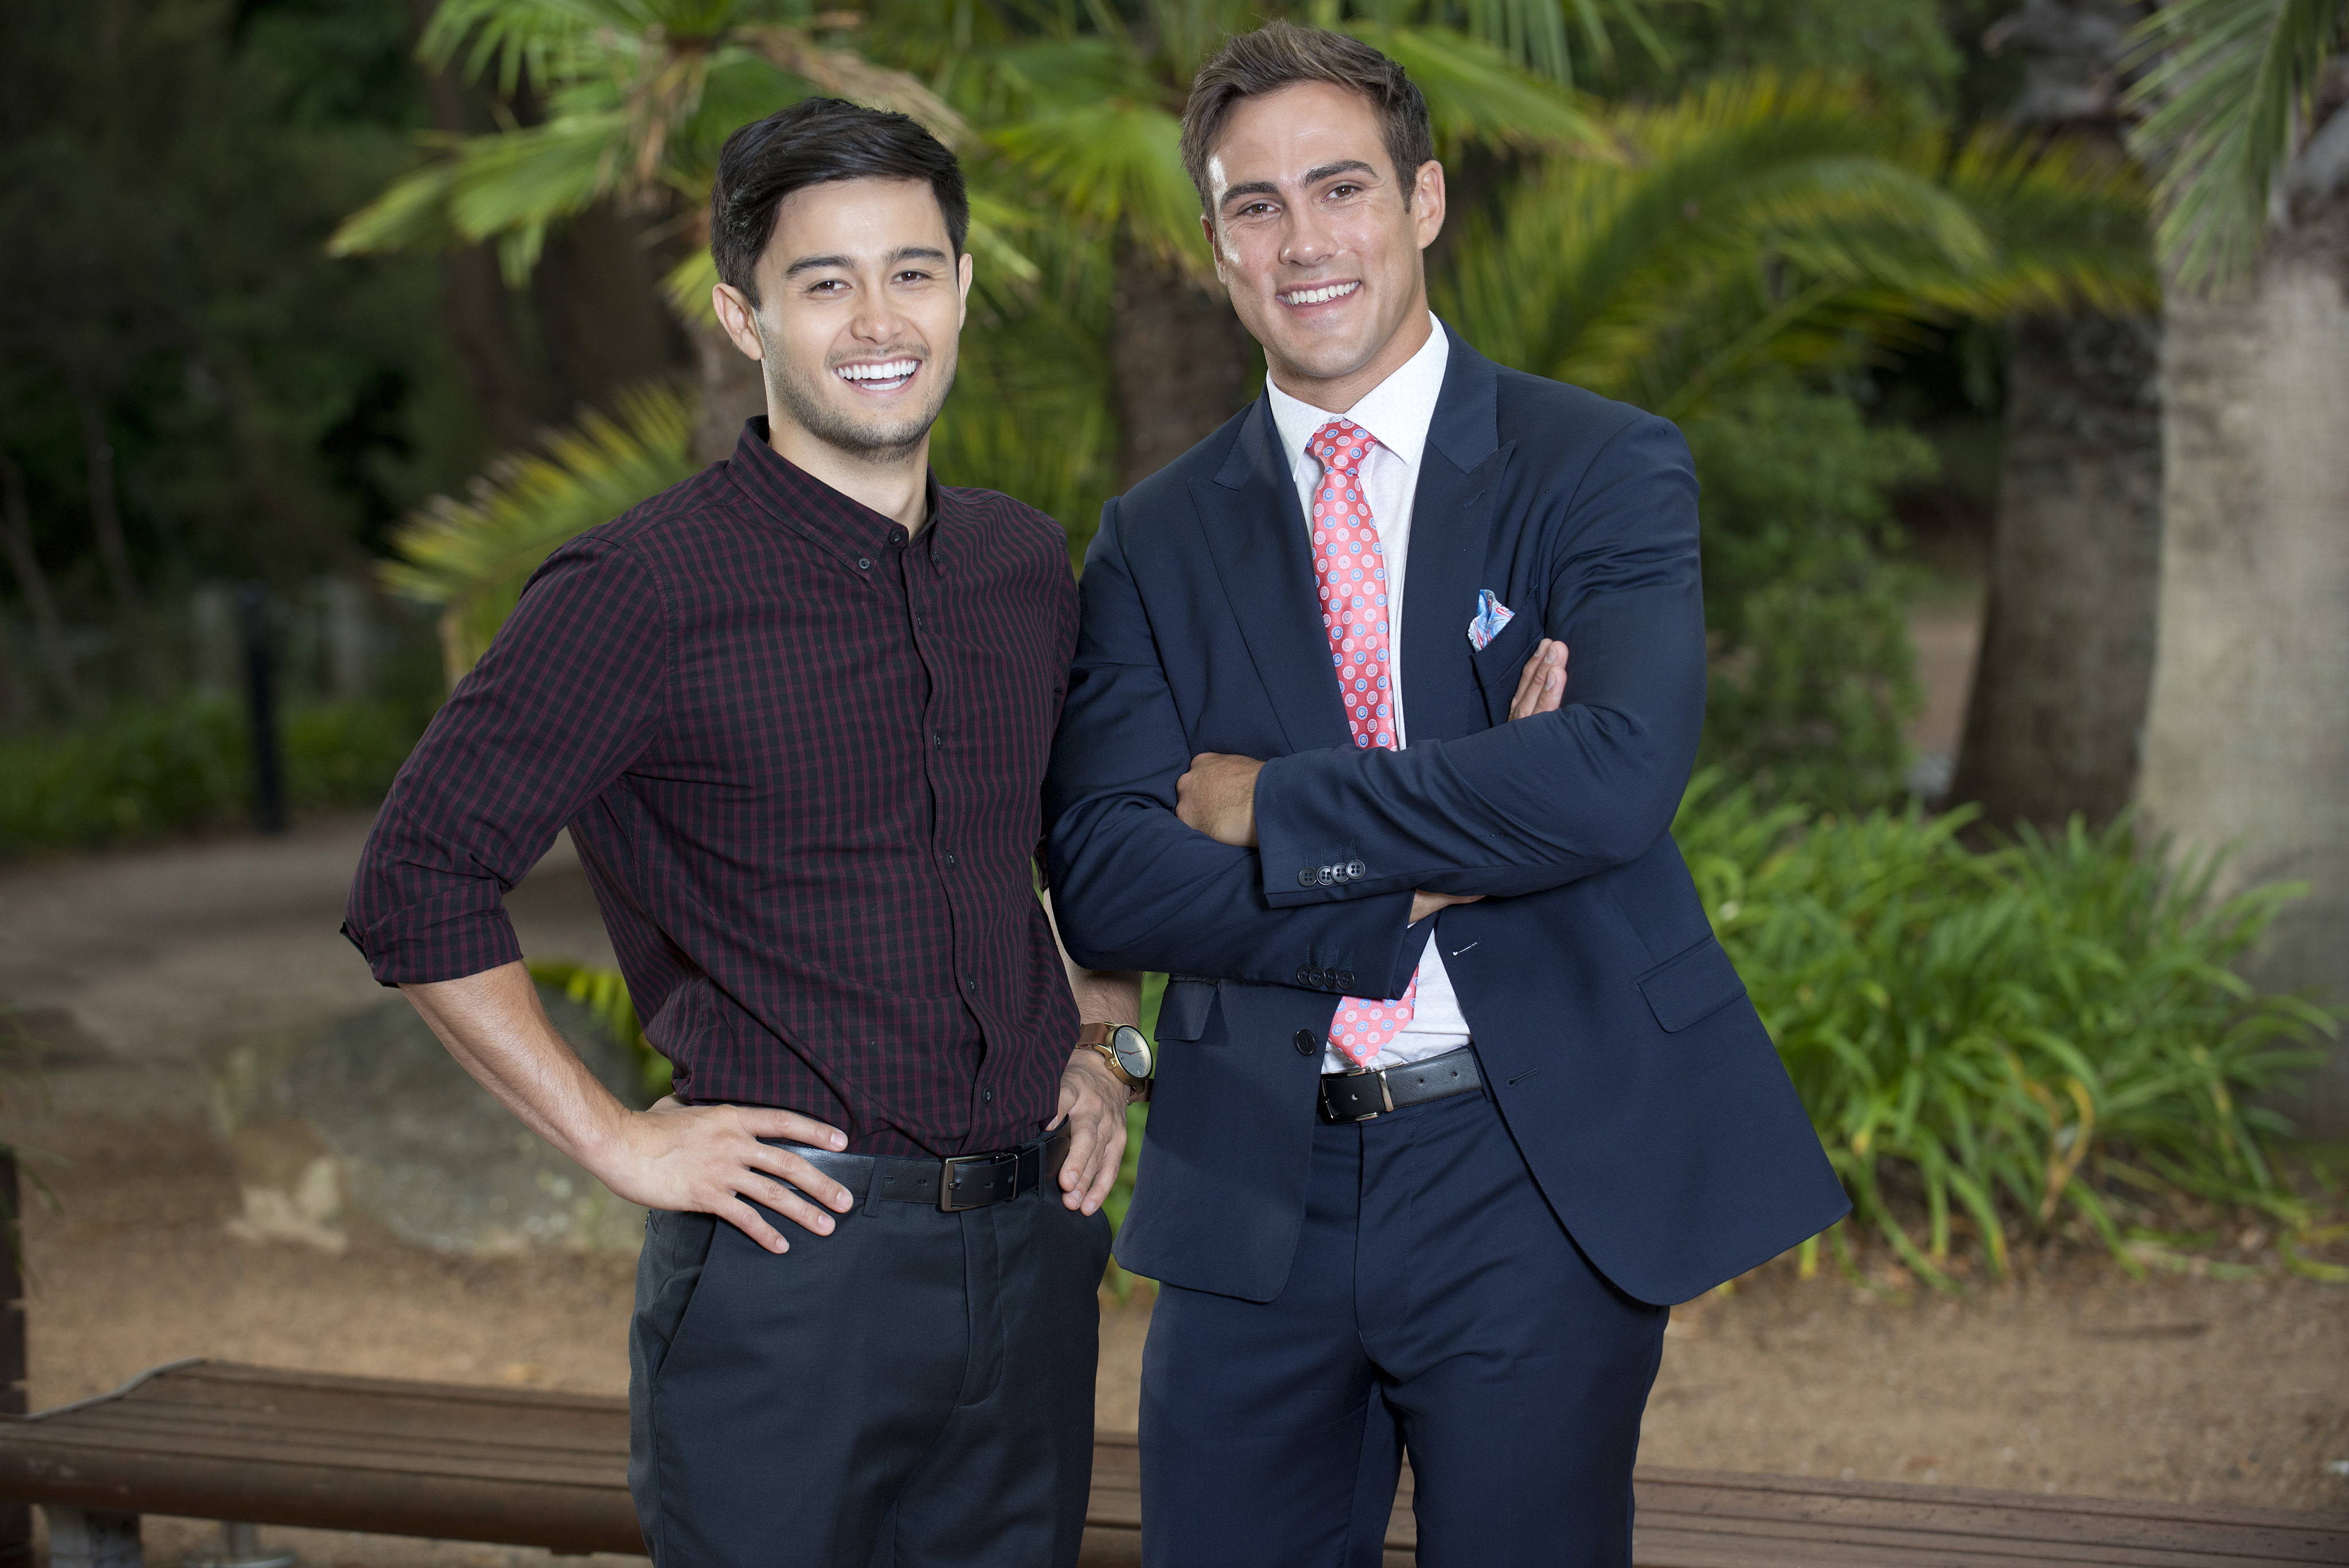 Neighbours actor - with Matt Wilson